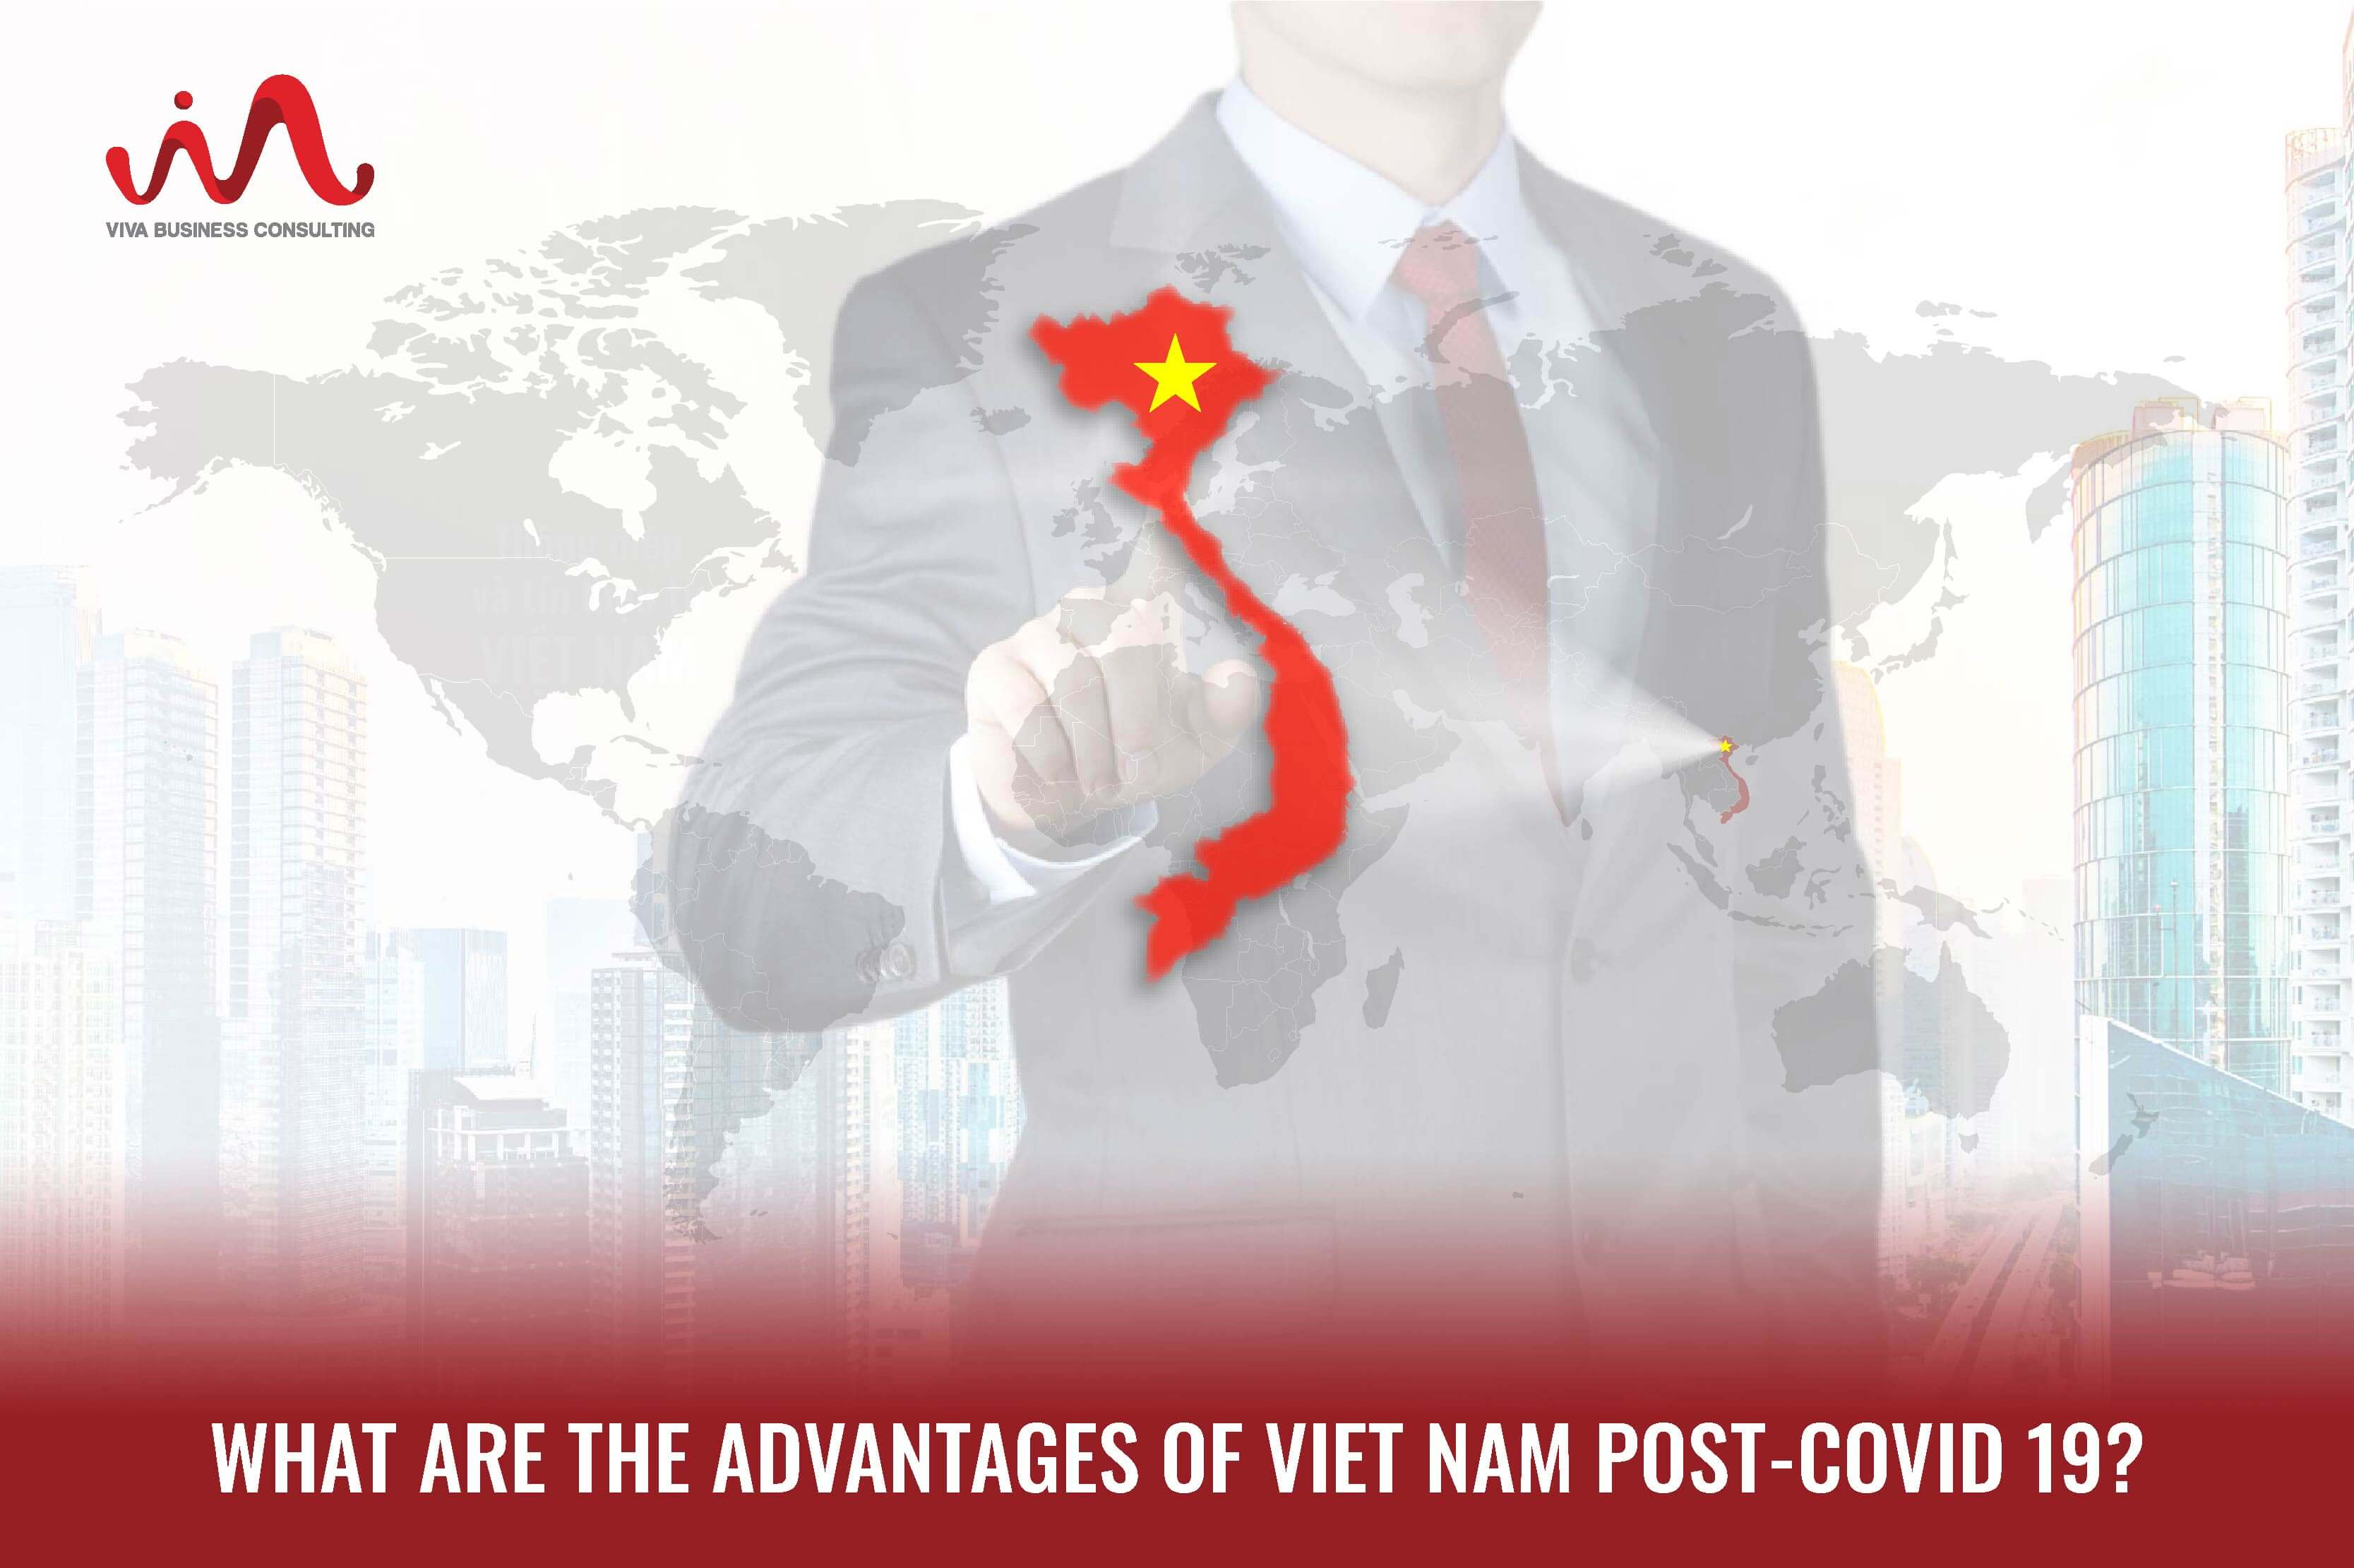 Opportunities for vietnam post-covid-19